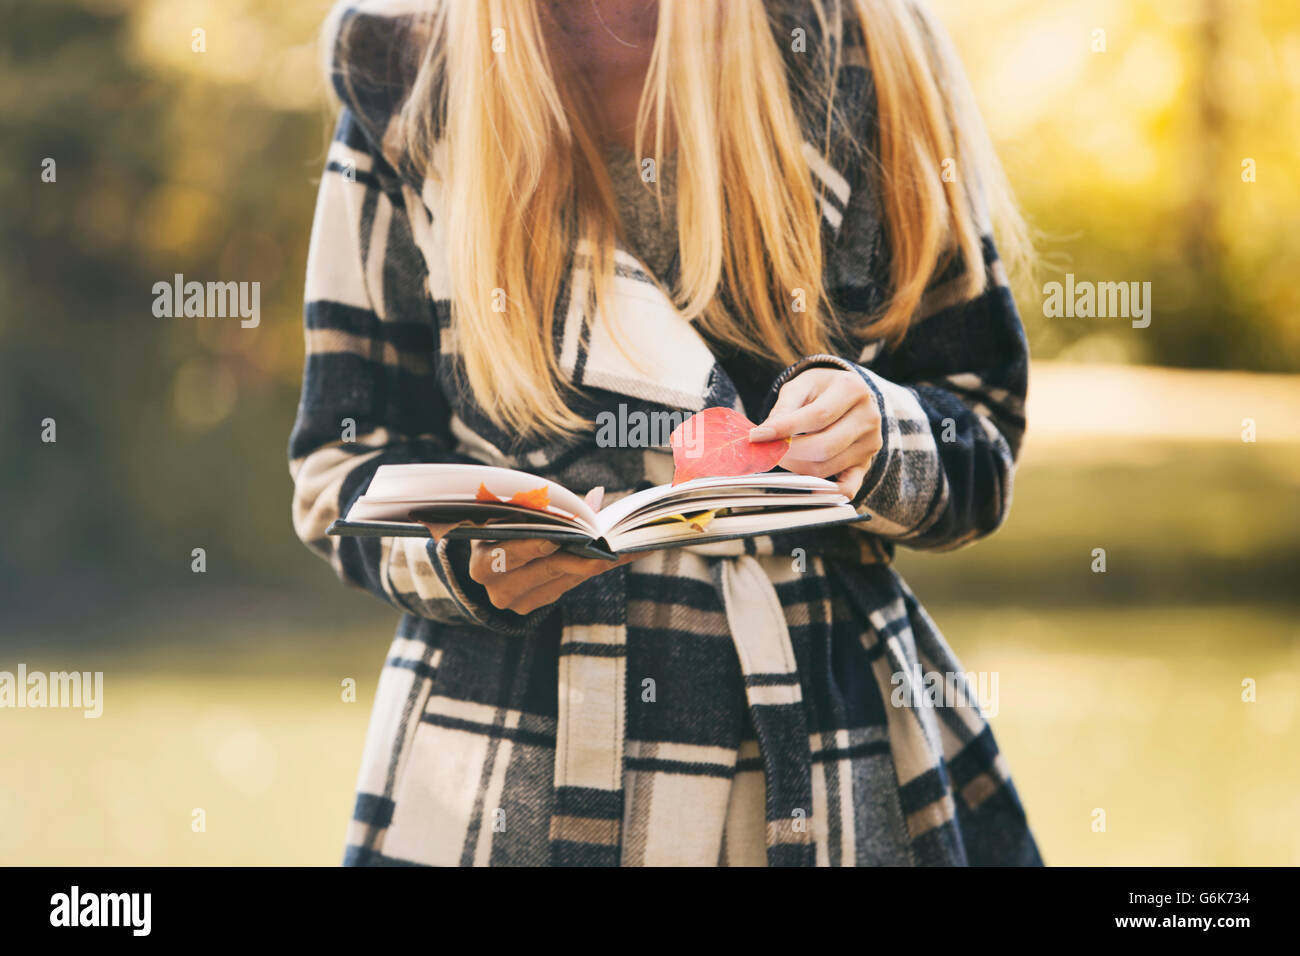 From the book where you might see the beautiful autumn leaves - Stock Photo Teenage Girl Holding Book And Autumn Leaves